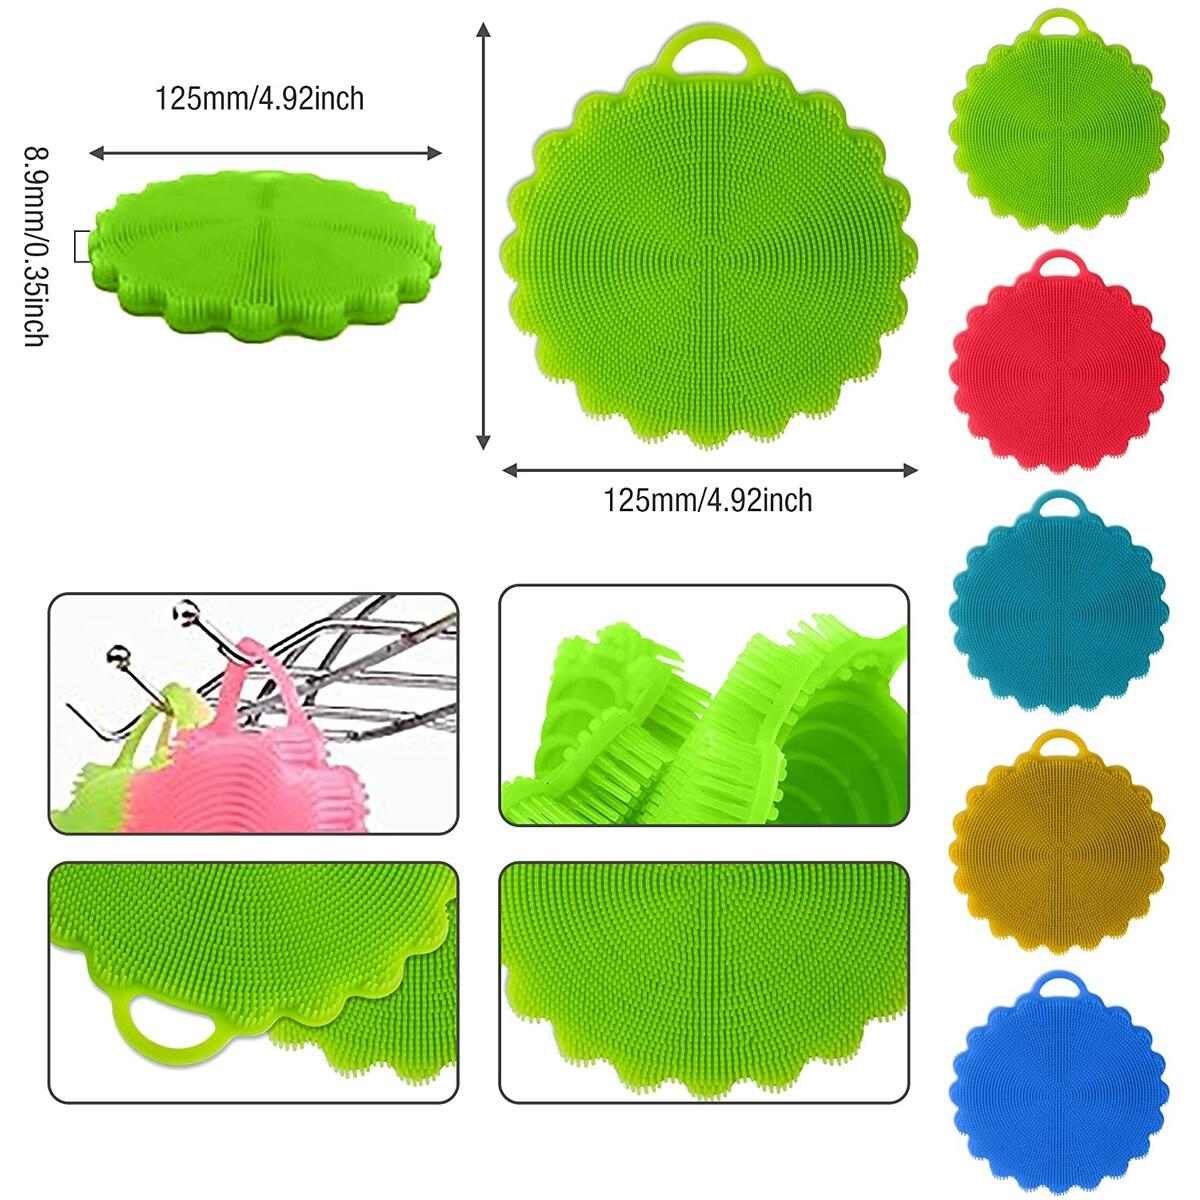 5pc Set Silicone Dish Sponge, Durable, Non Stick Cleaning Kitchen Brush, Perfect for your Dish, Pot, Pan, Bowl – Non-Abrasive Insulation Pad to Hold Hot Pans or For Bathing and Washing Face